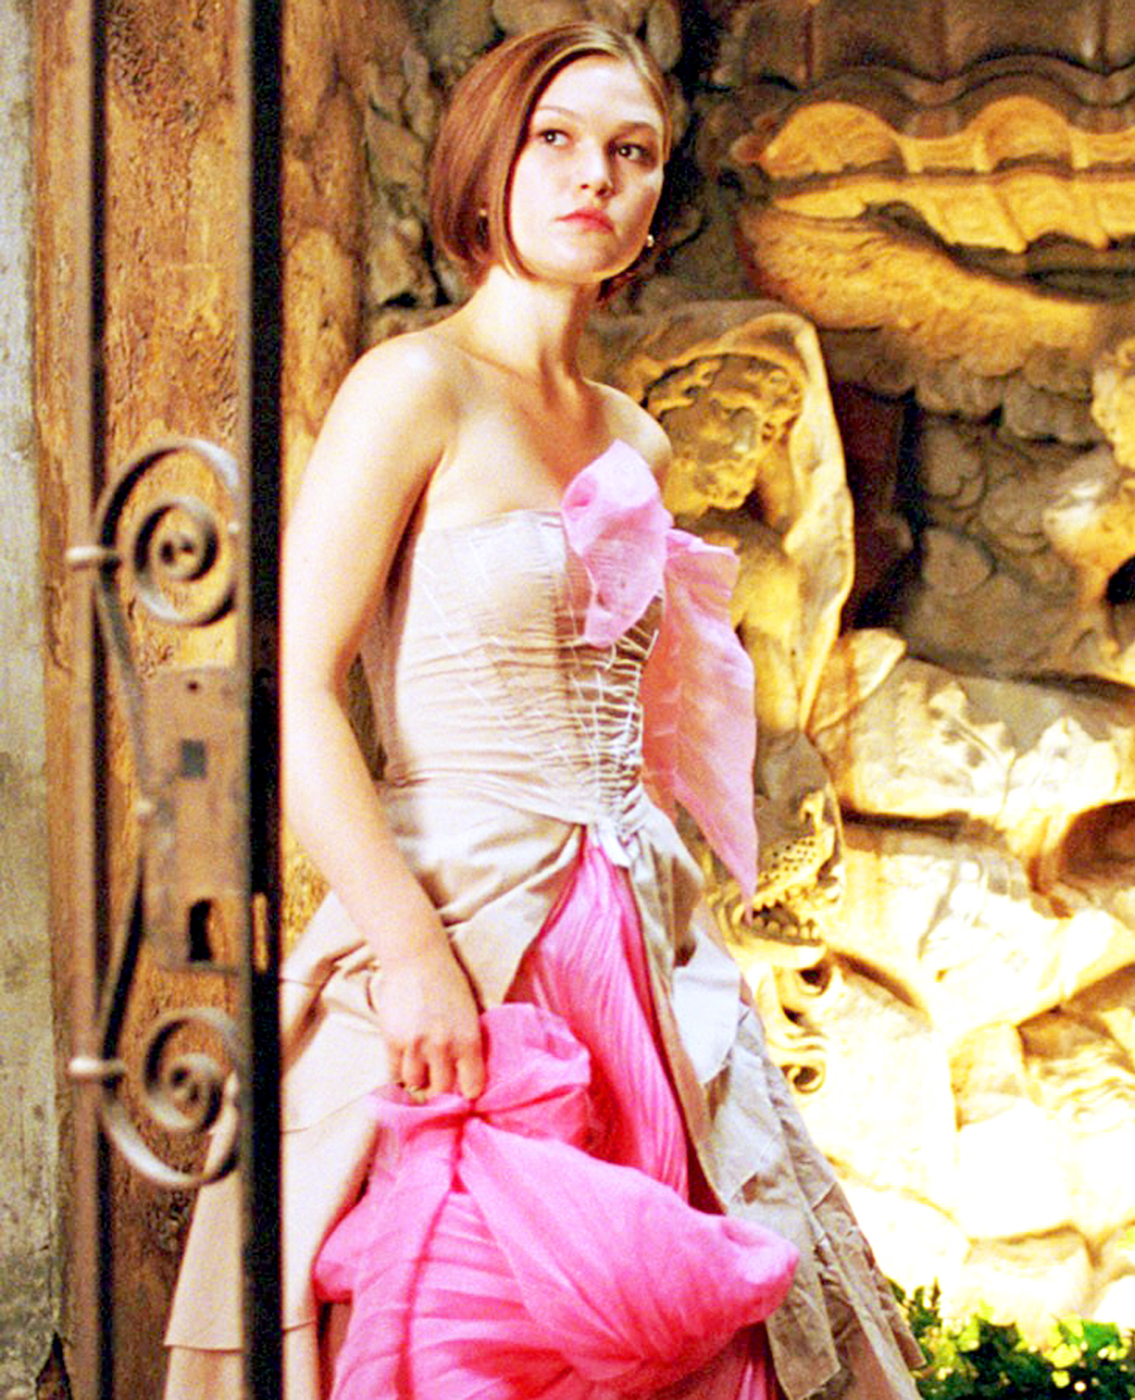 Hot on the heels of Save the Last Dance and the Bourne Identity , Stiles played Paige Morgan in 2004's the Prince and Me . The movie includes footage from 1955's To Catch a Thief , featuring Grace Kelly.